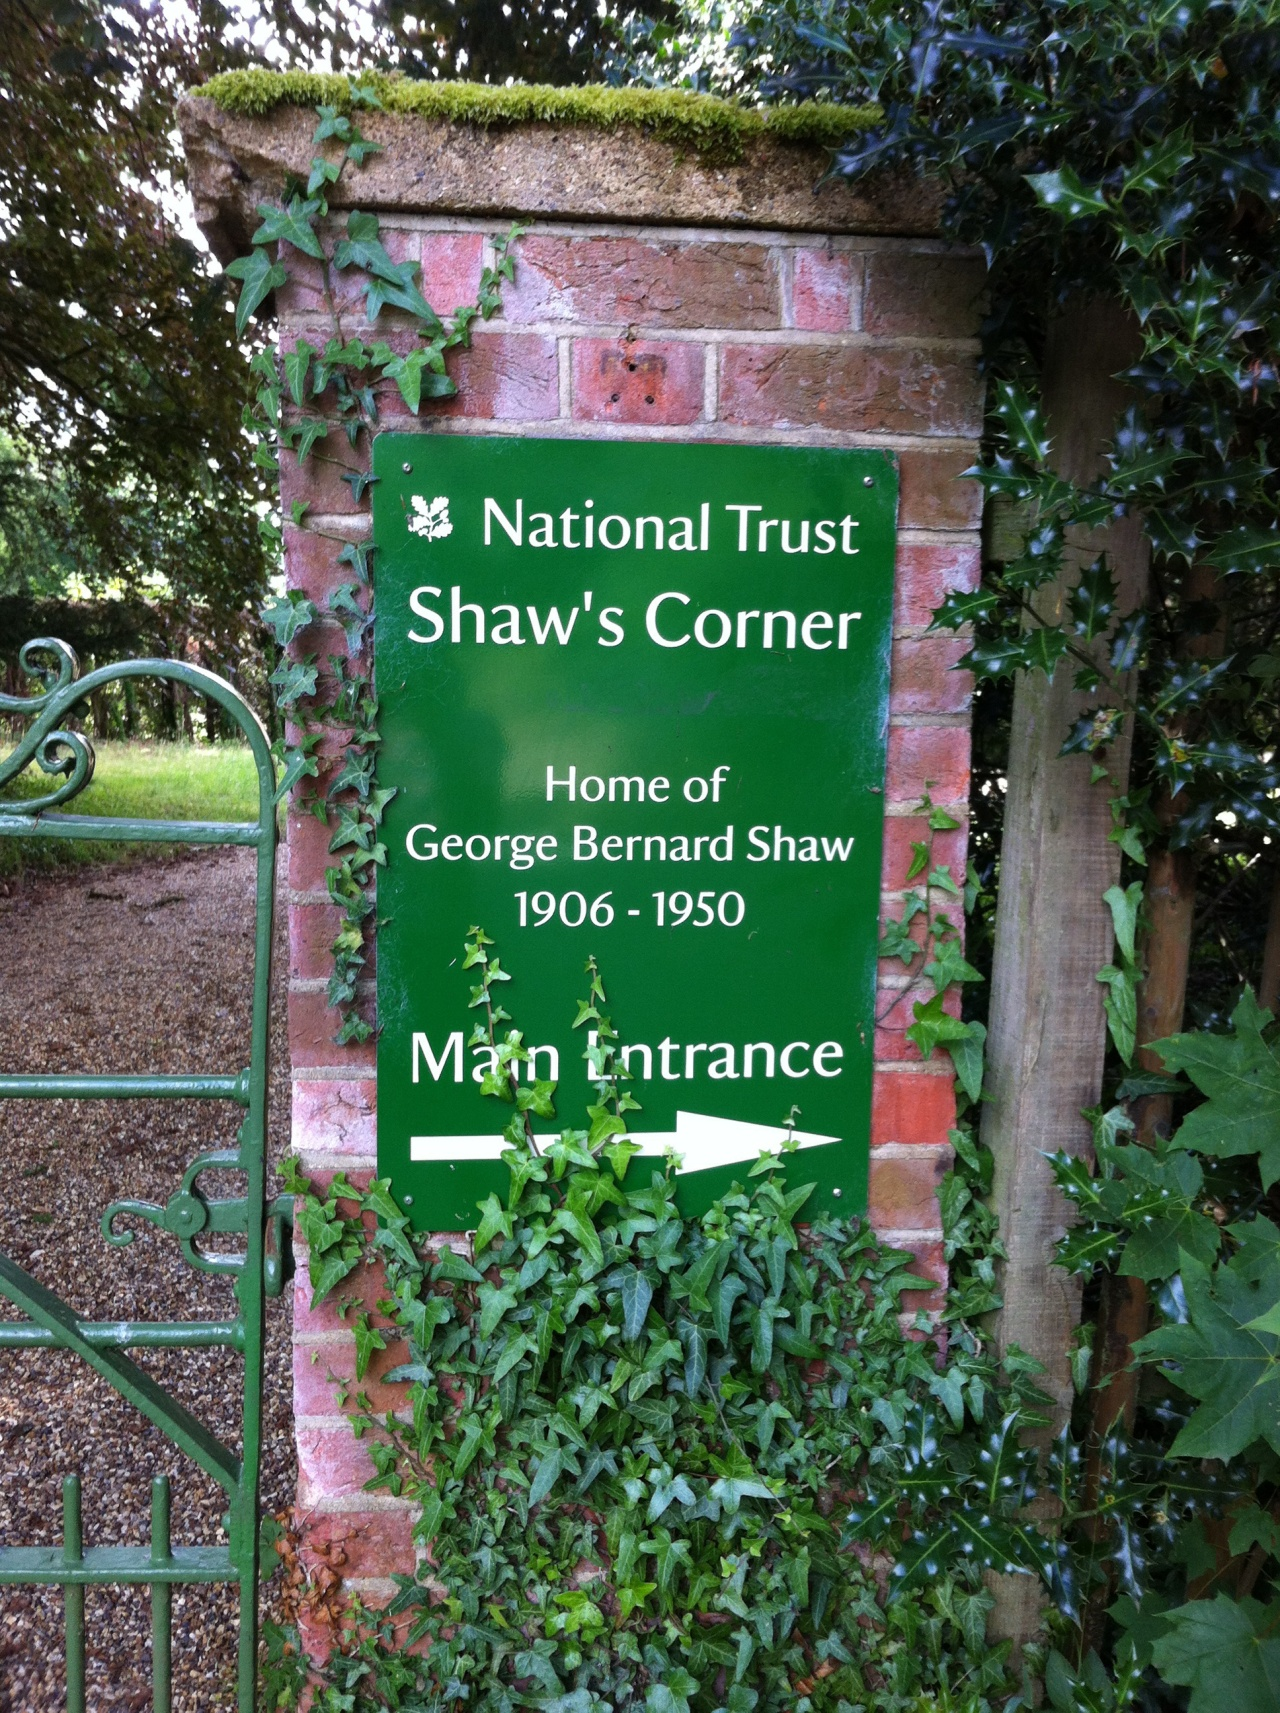 Outside author/playwright Bernard Shaw's house. He owned the property from 1906 until his death in 1950. [Photo by me, 2016.]